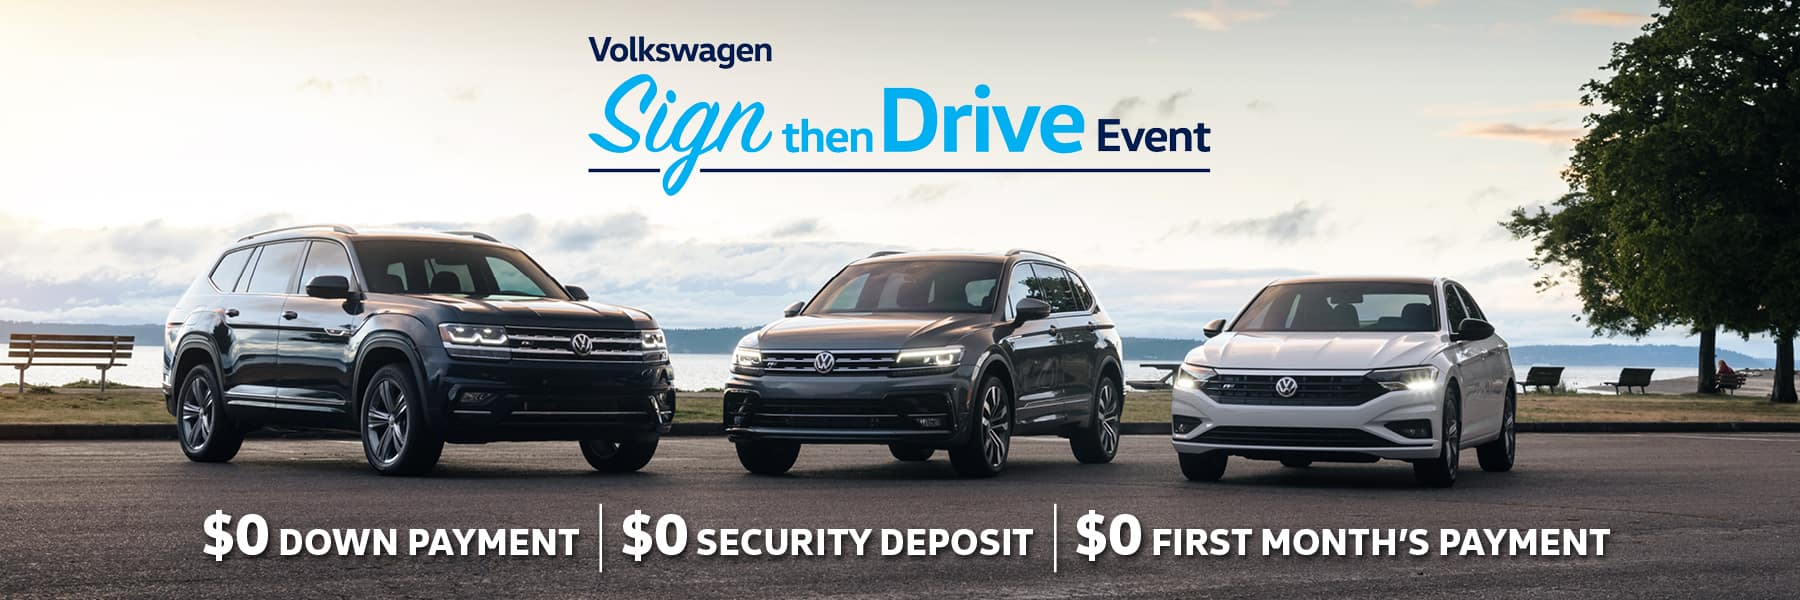 Volkswagen's Sign then Drive Event. $0 down payment, $0 security  deposit, $0 first months payment.